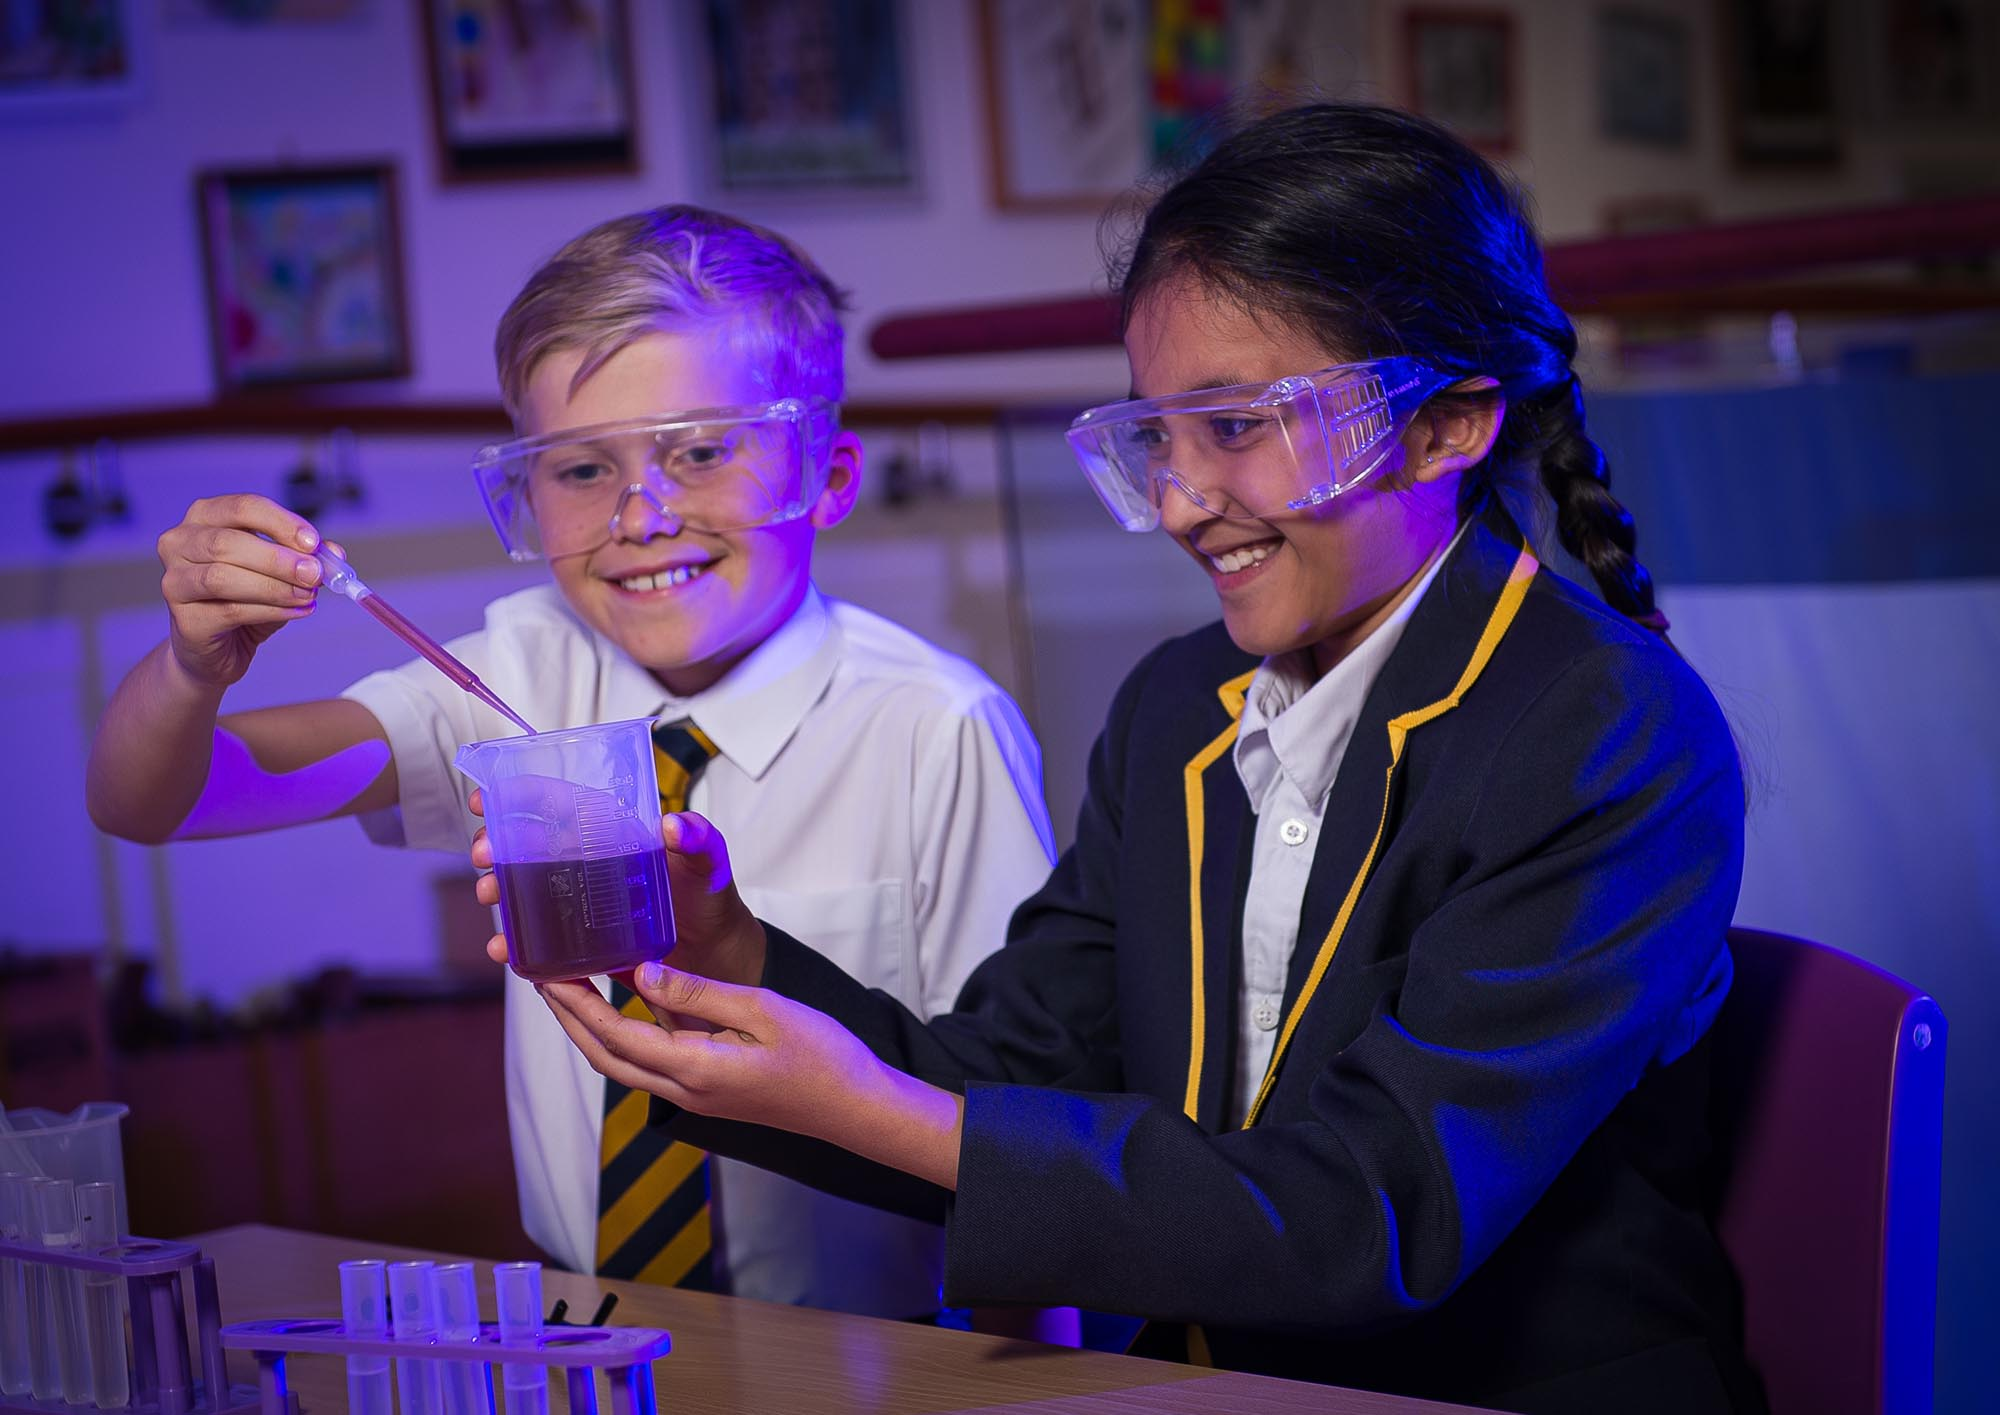 Boy and girl doing science experiment